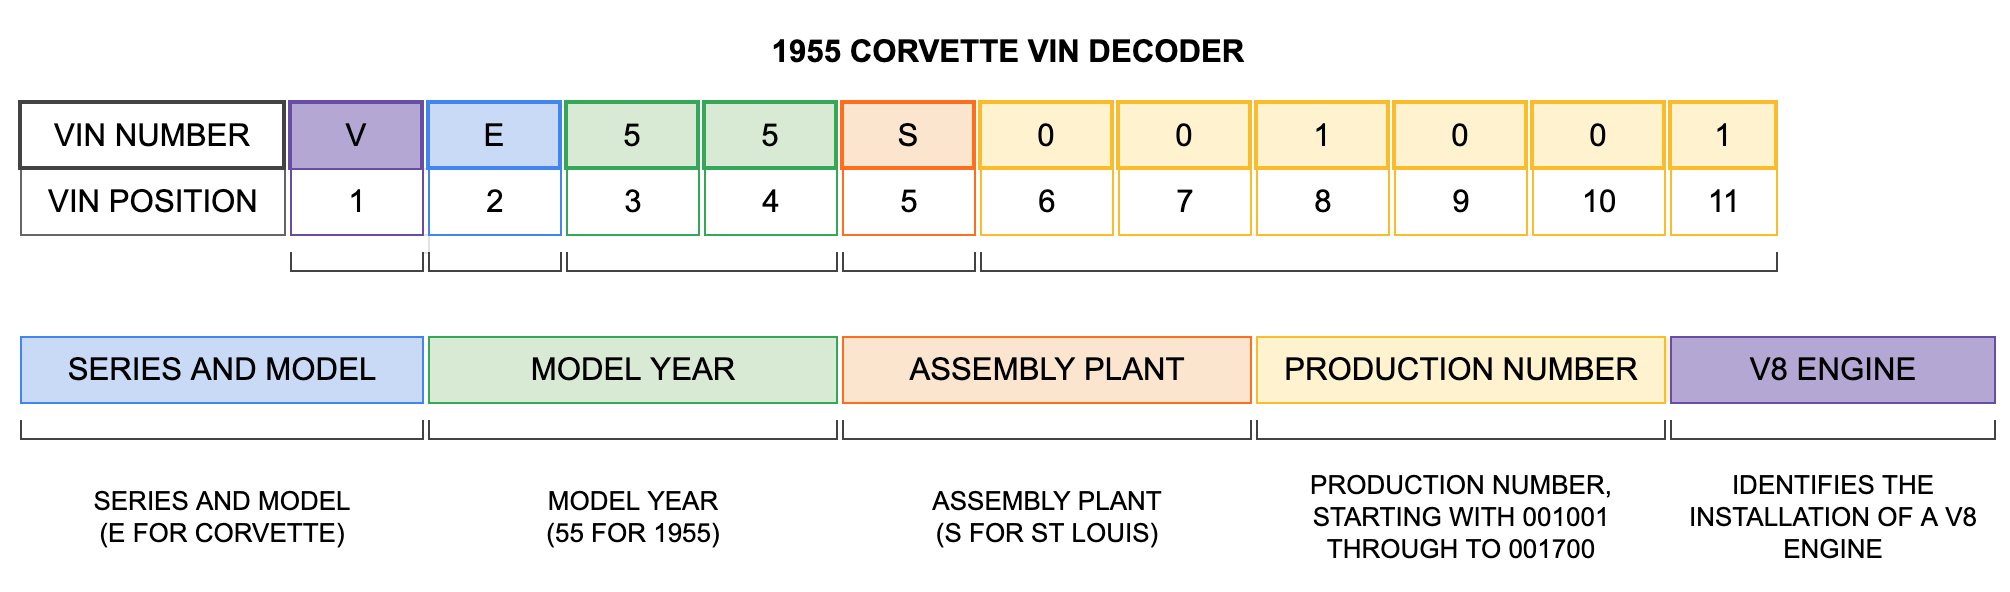 1955 Corvette VIN Decoder